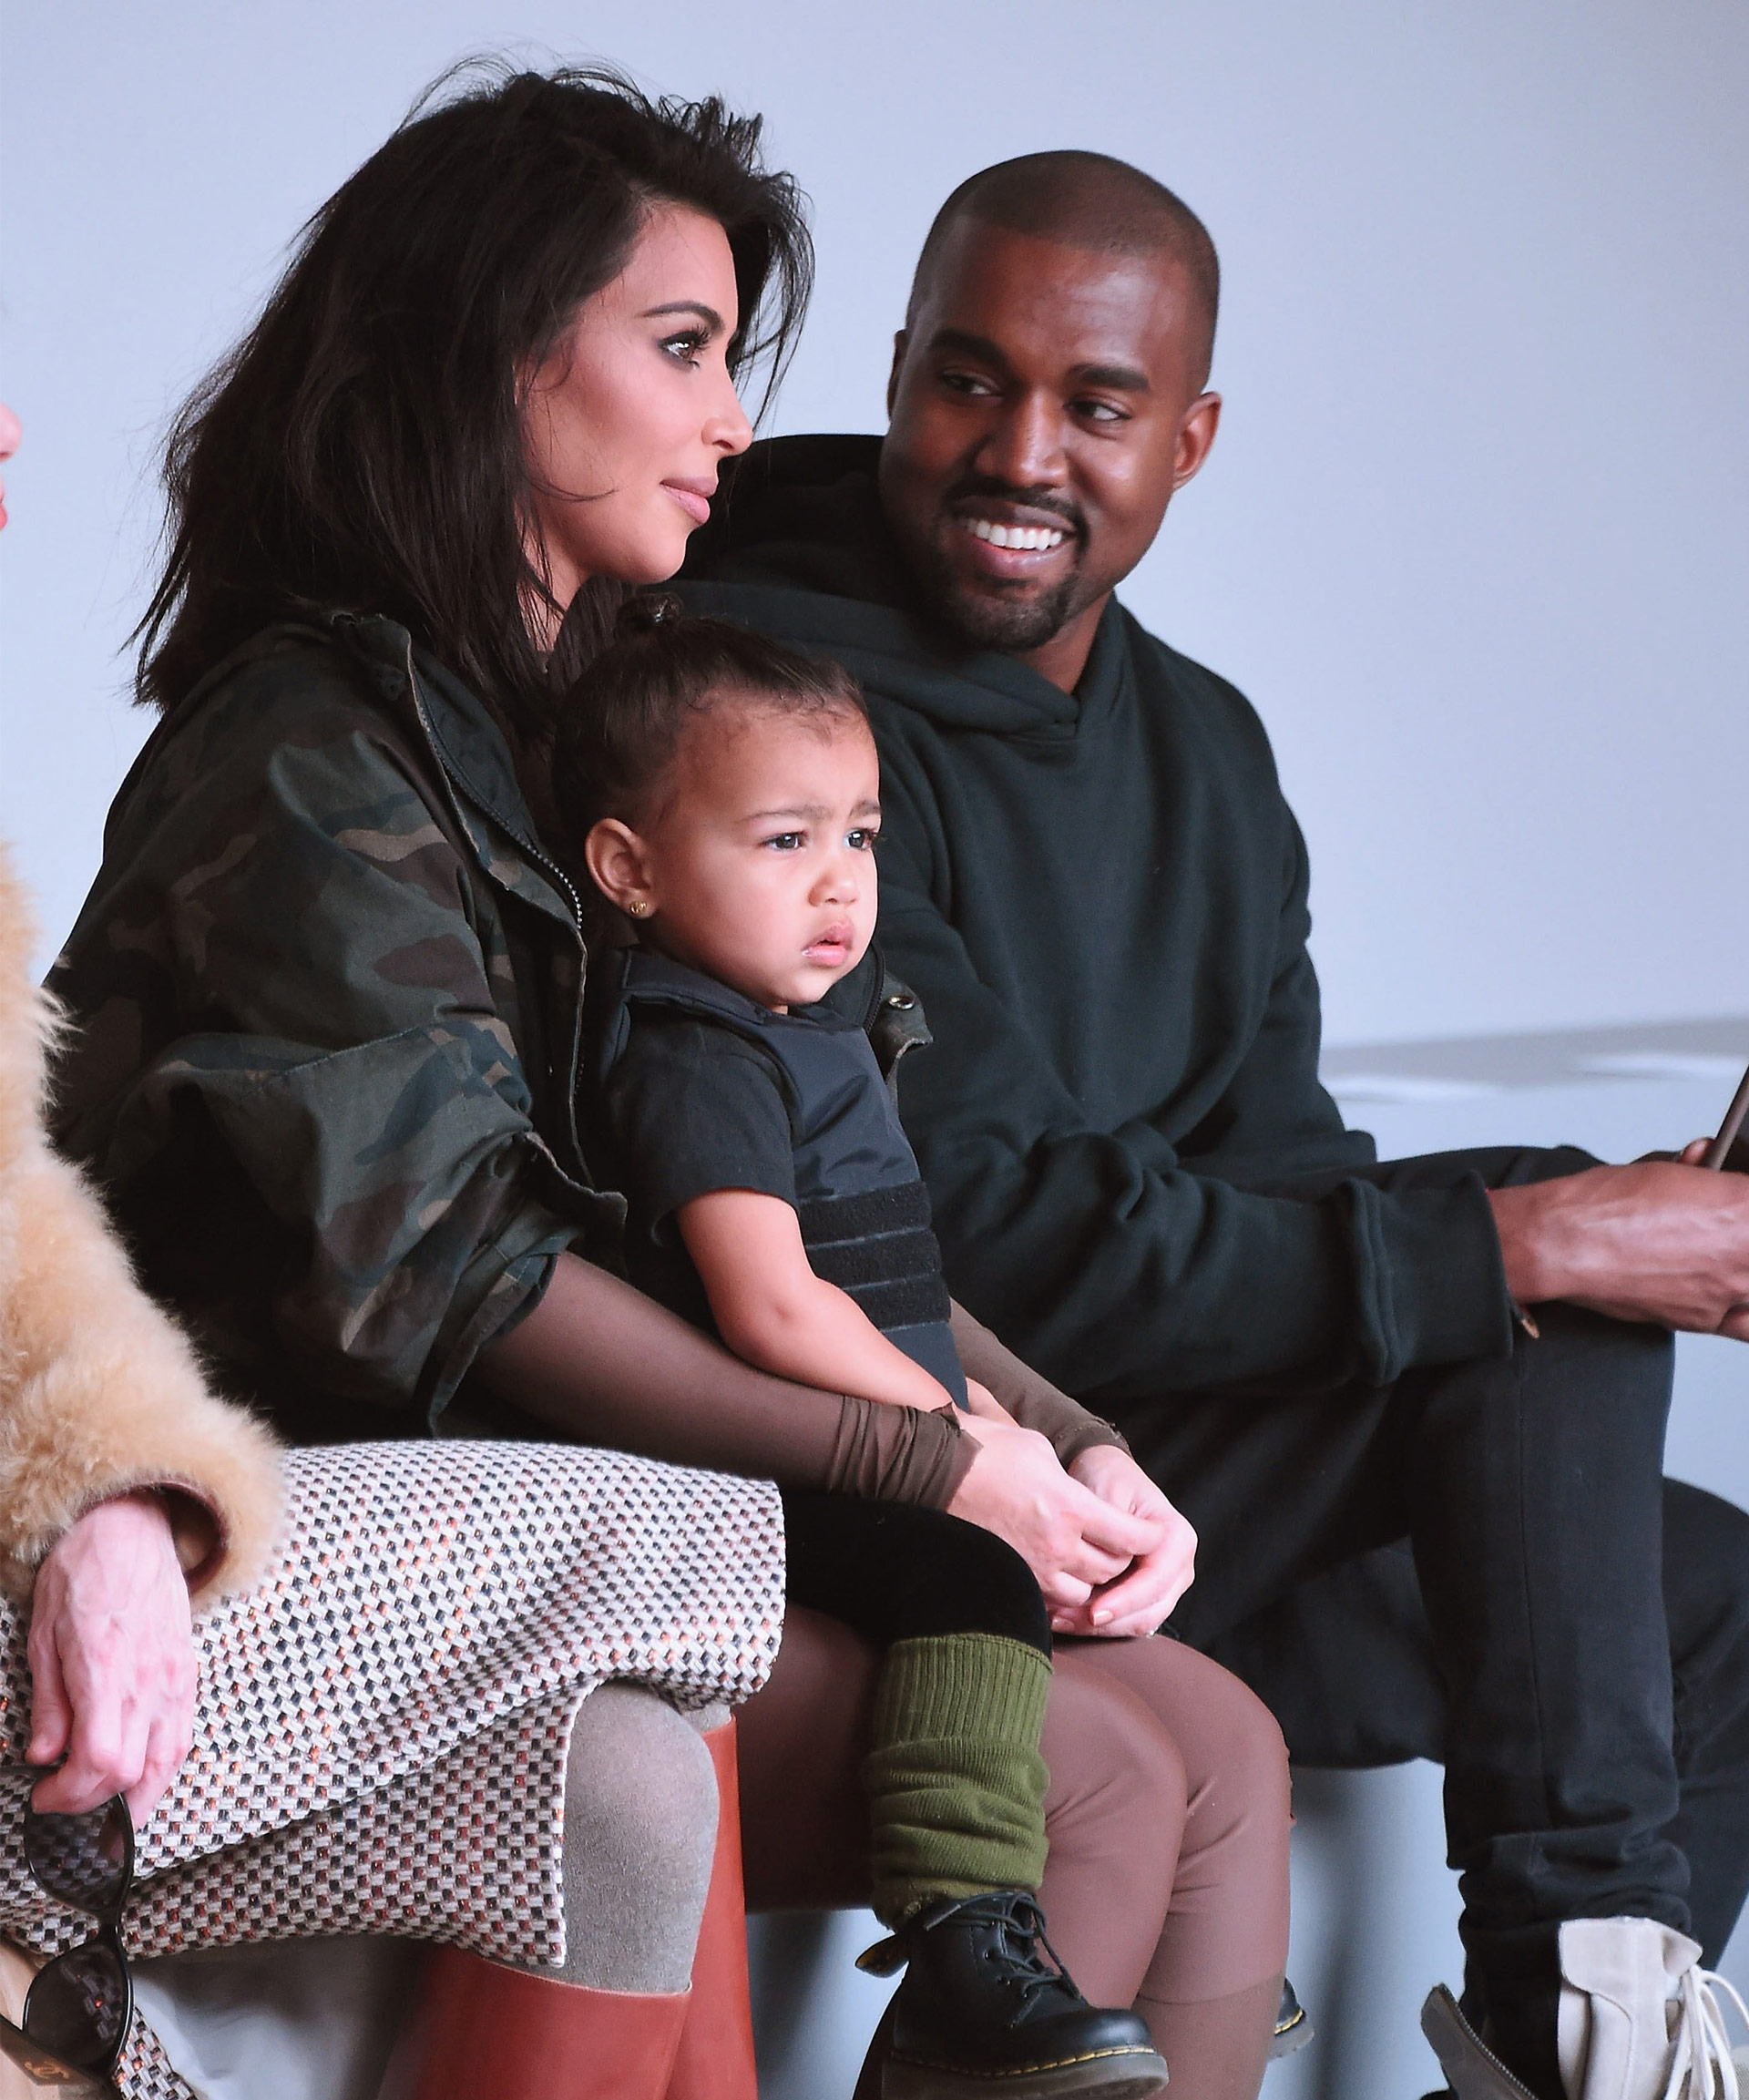 Kanye West returns home to Kim and the kids